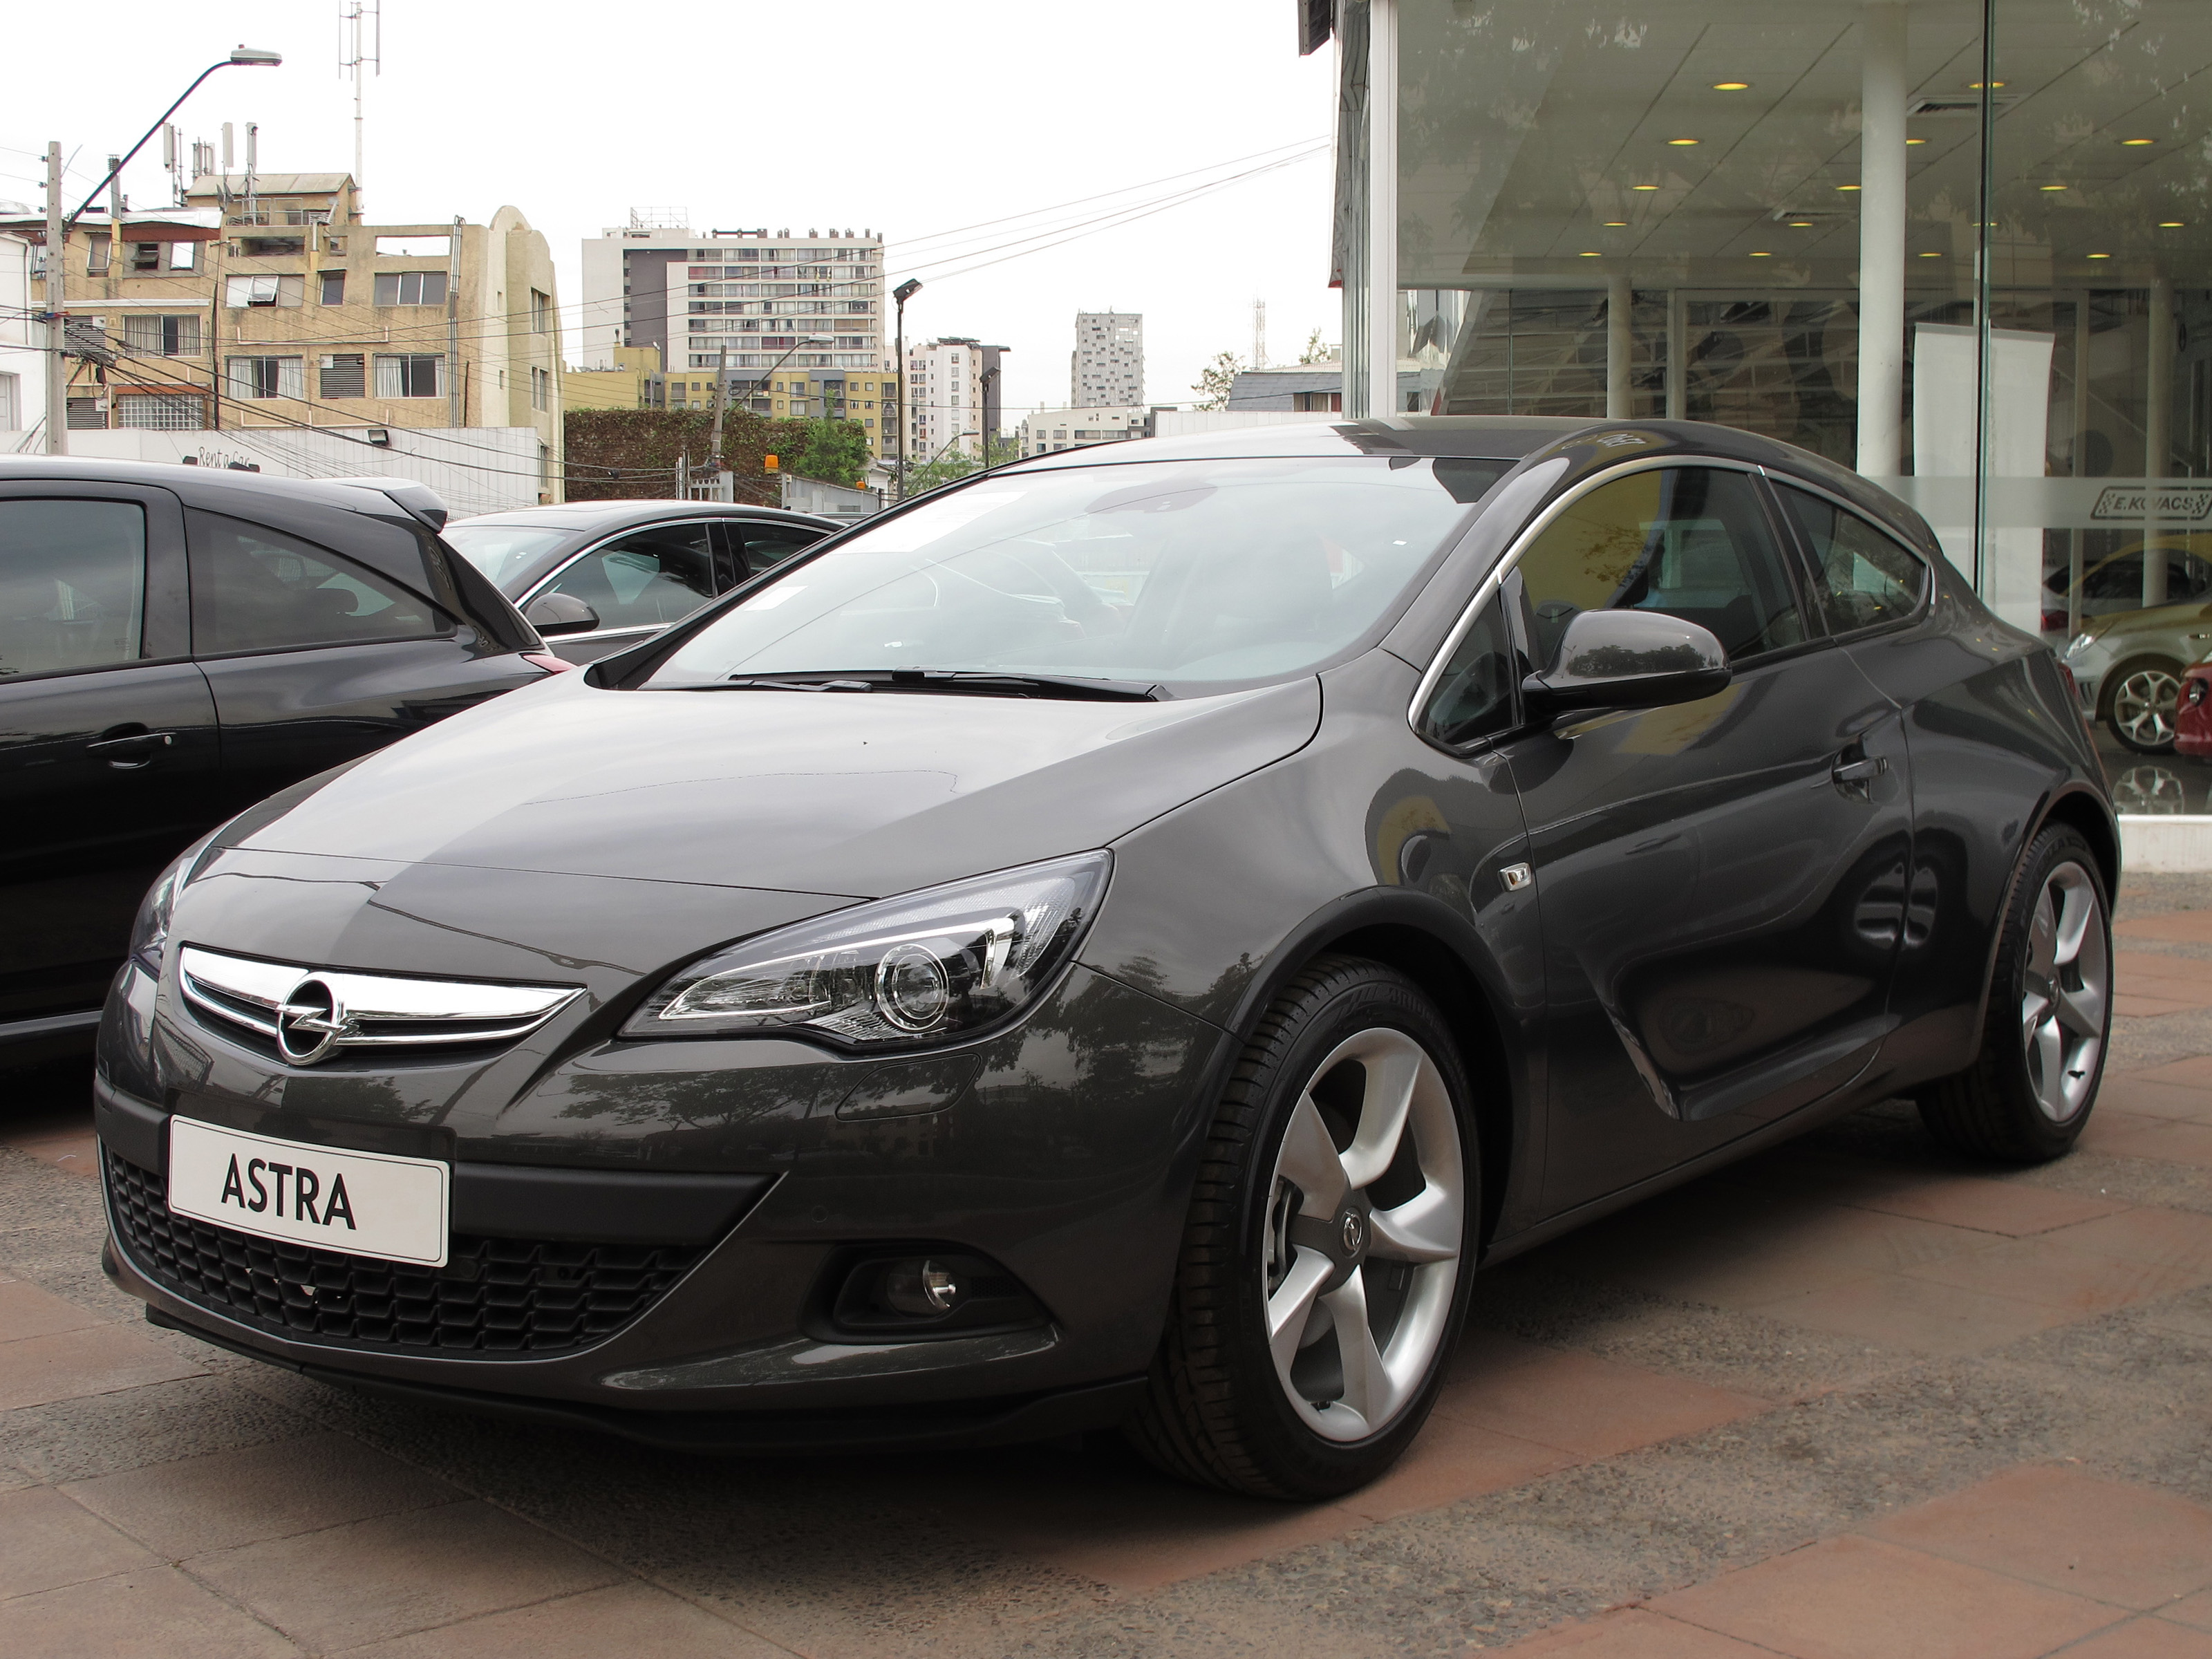 2015 opel astra j gtc pictures information and specs auto. Black Bedroom Furniture Sets. Home Design Ideas